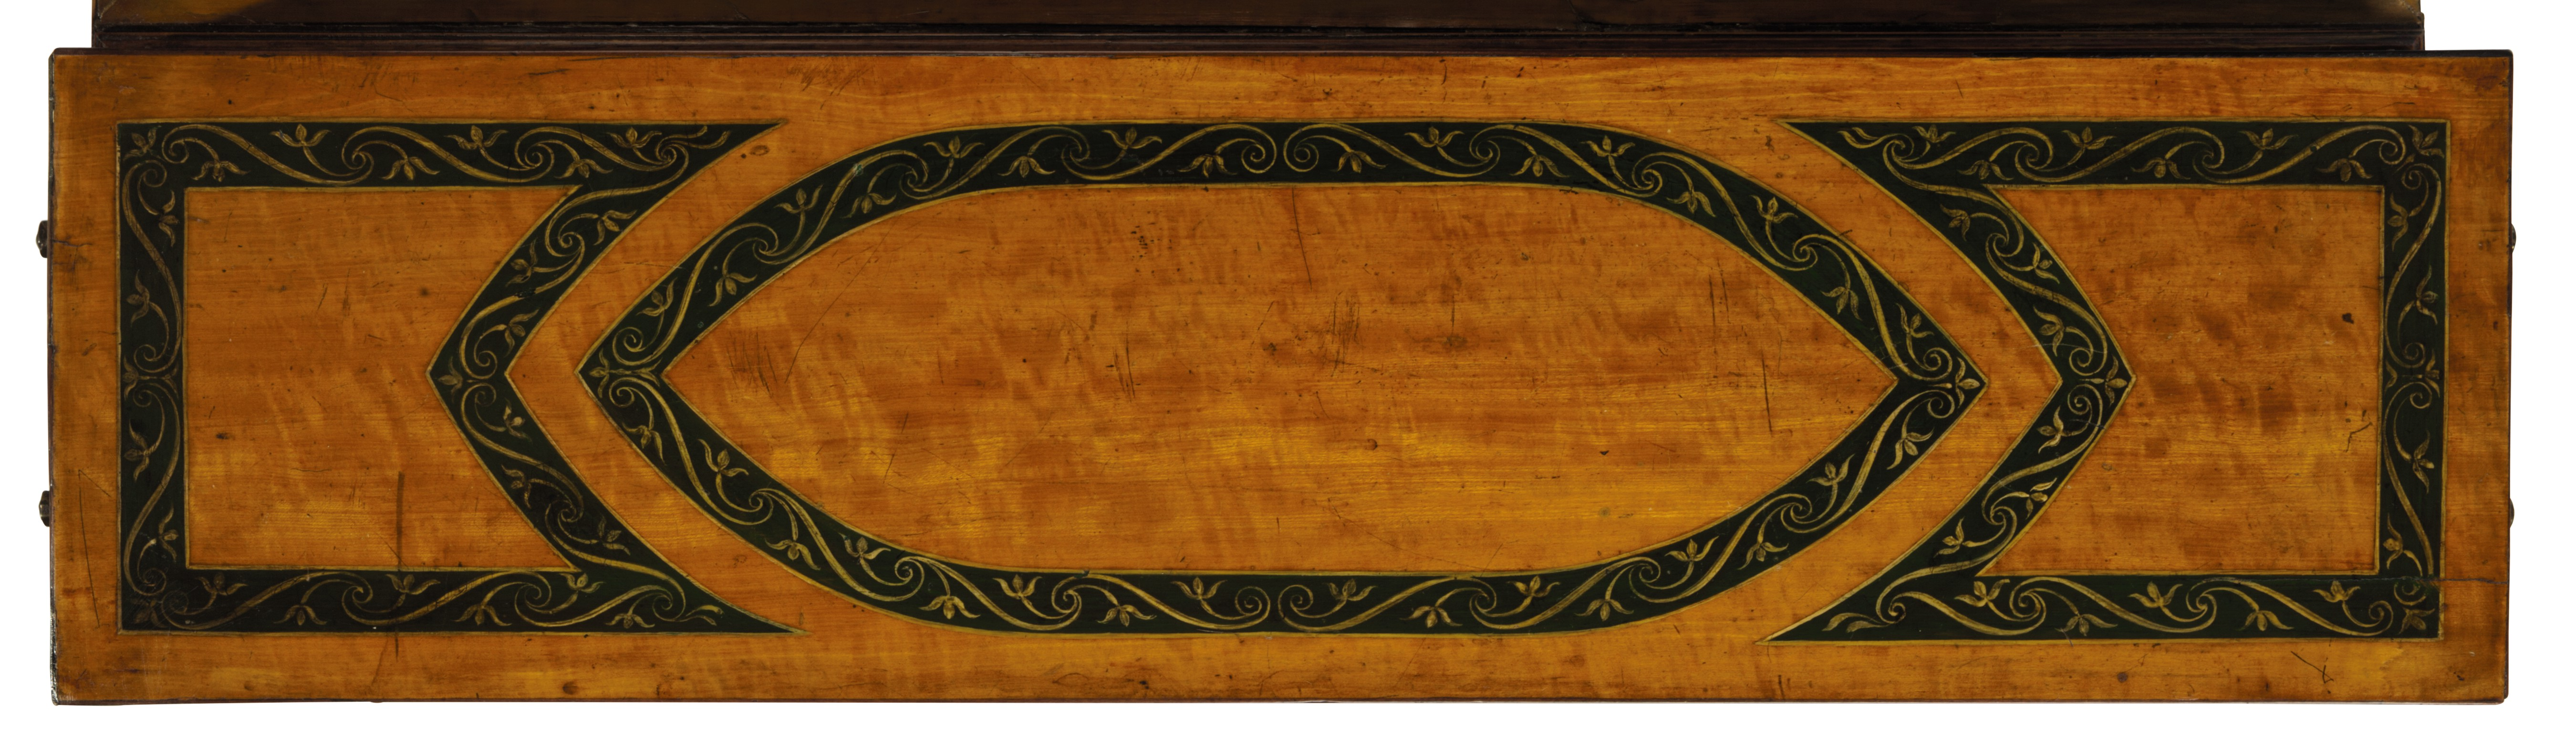 A LATE GEORGE III POLYCHROME-PAINTED SATINWOOD DOUBLE-SIDED WRITING TABLE